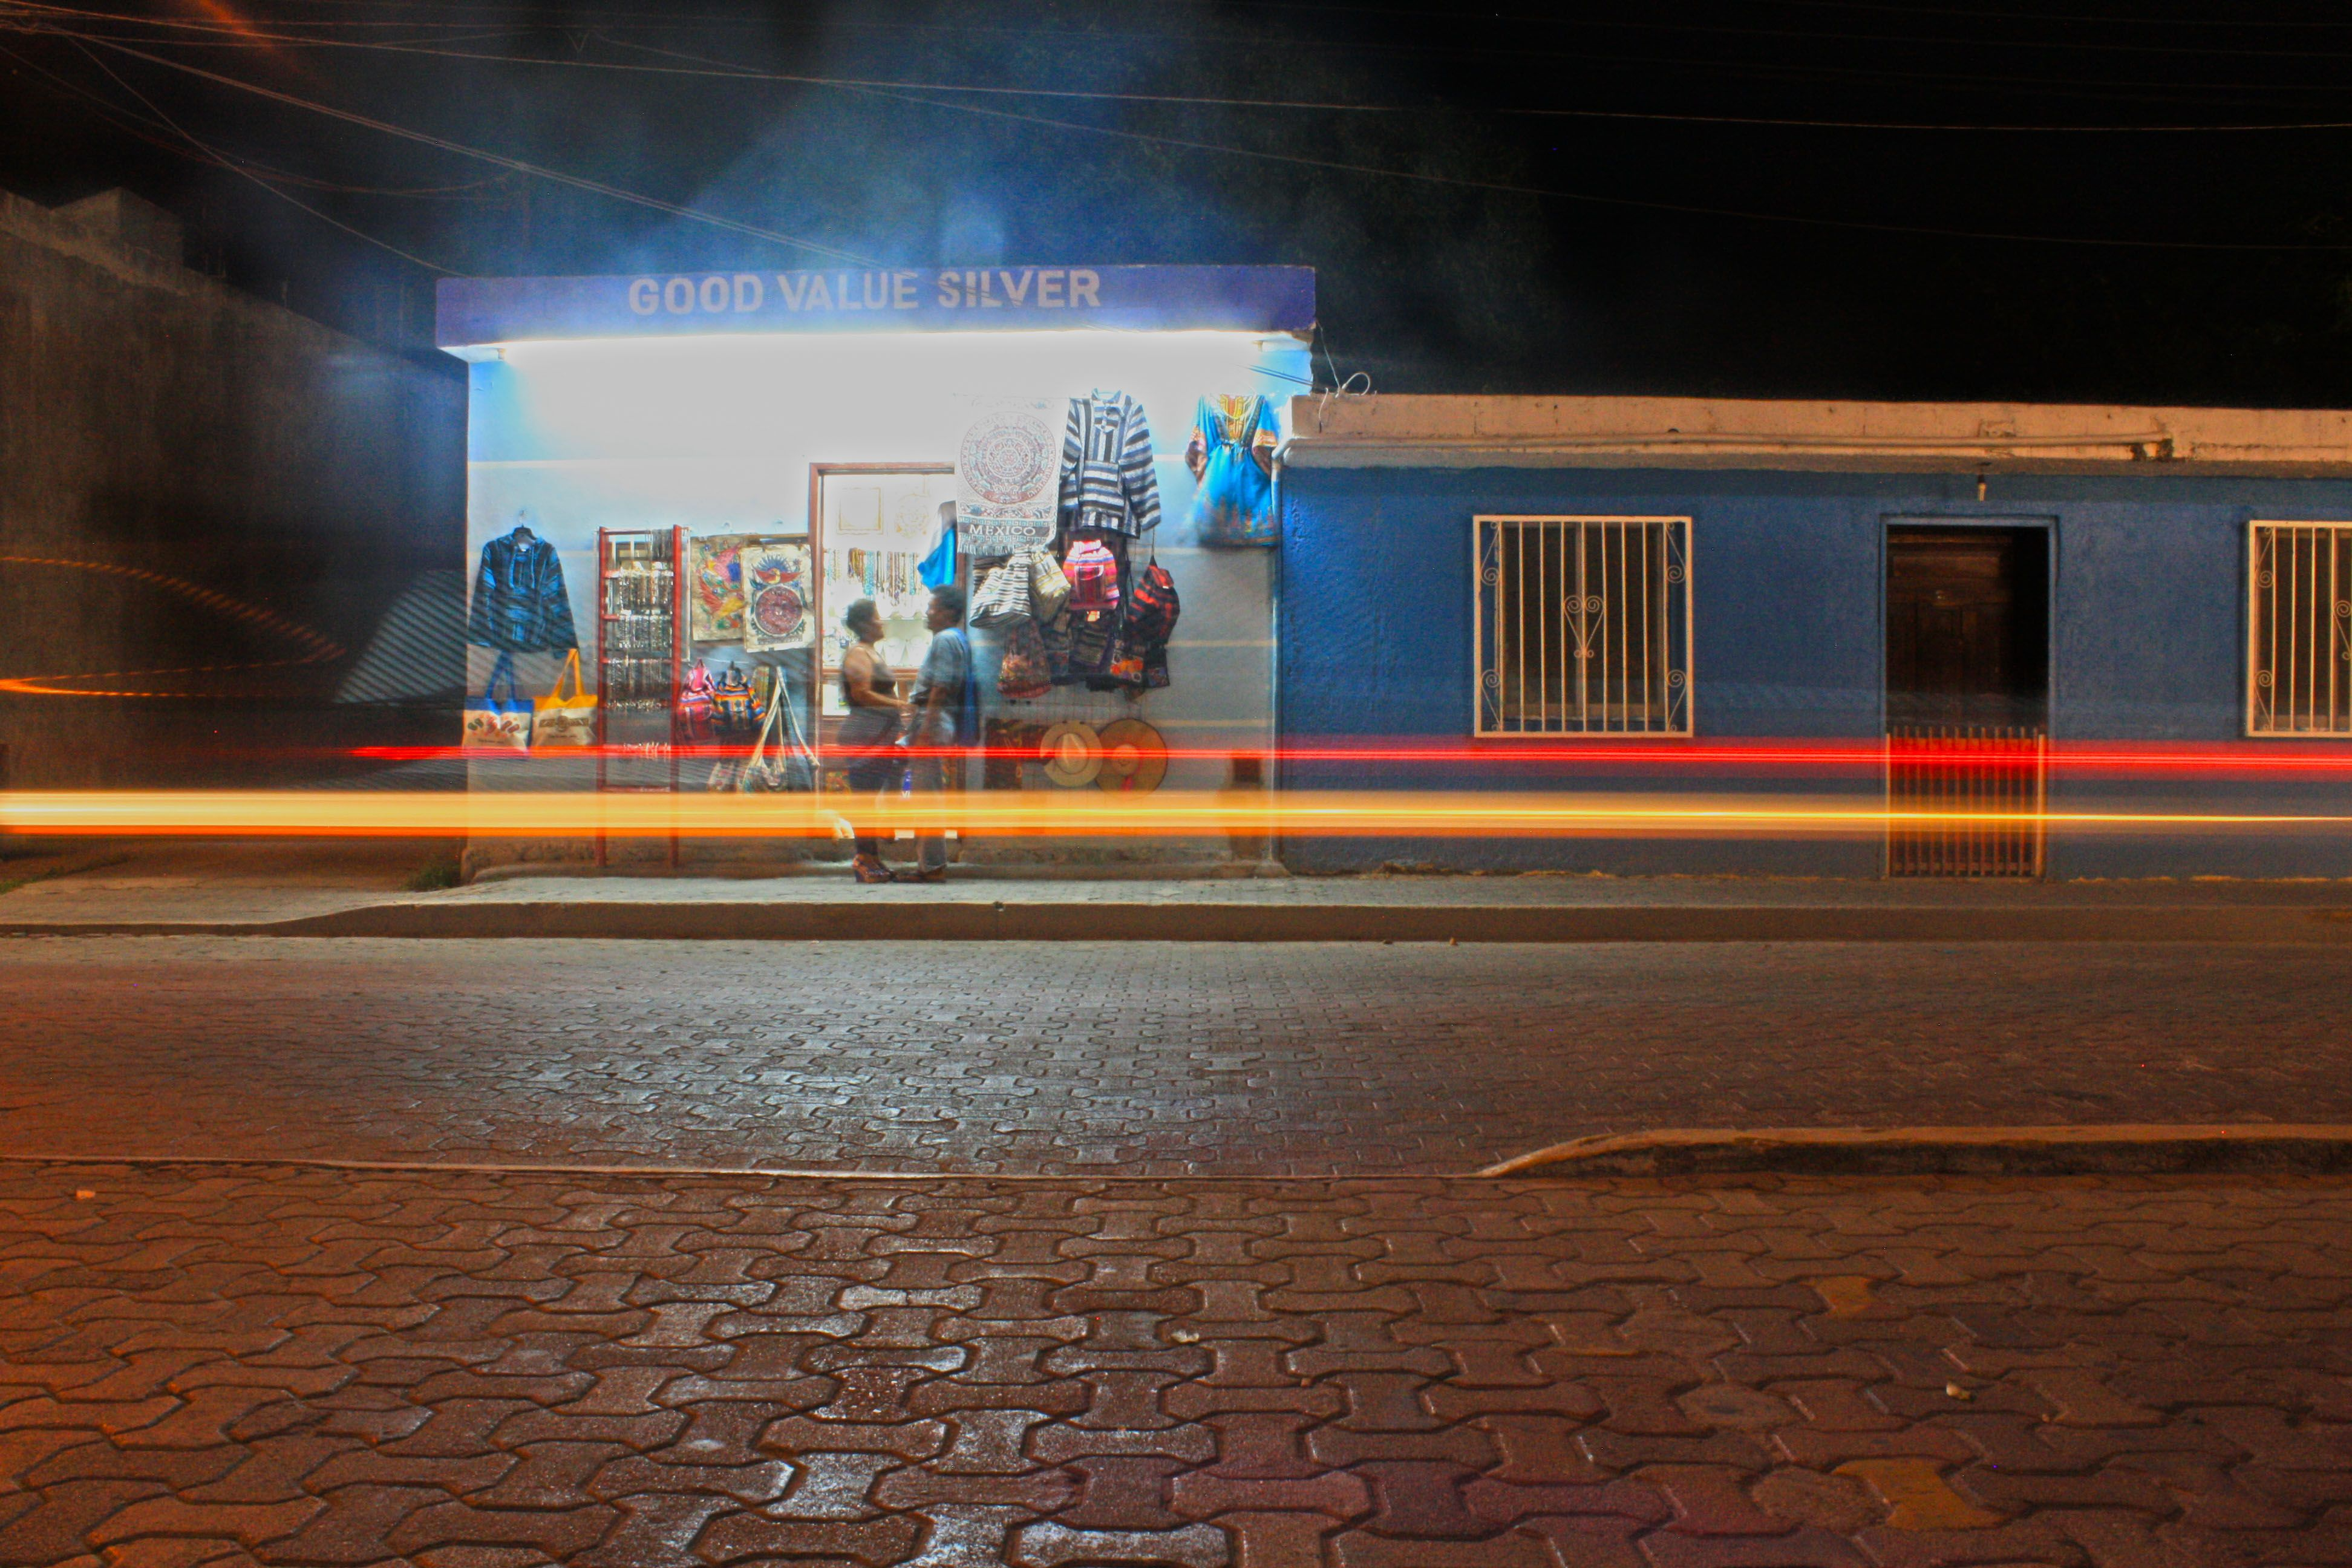 4 second exposure on a scooter intruding on a romantic mexican moment